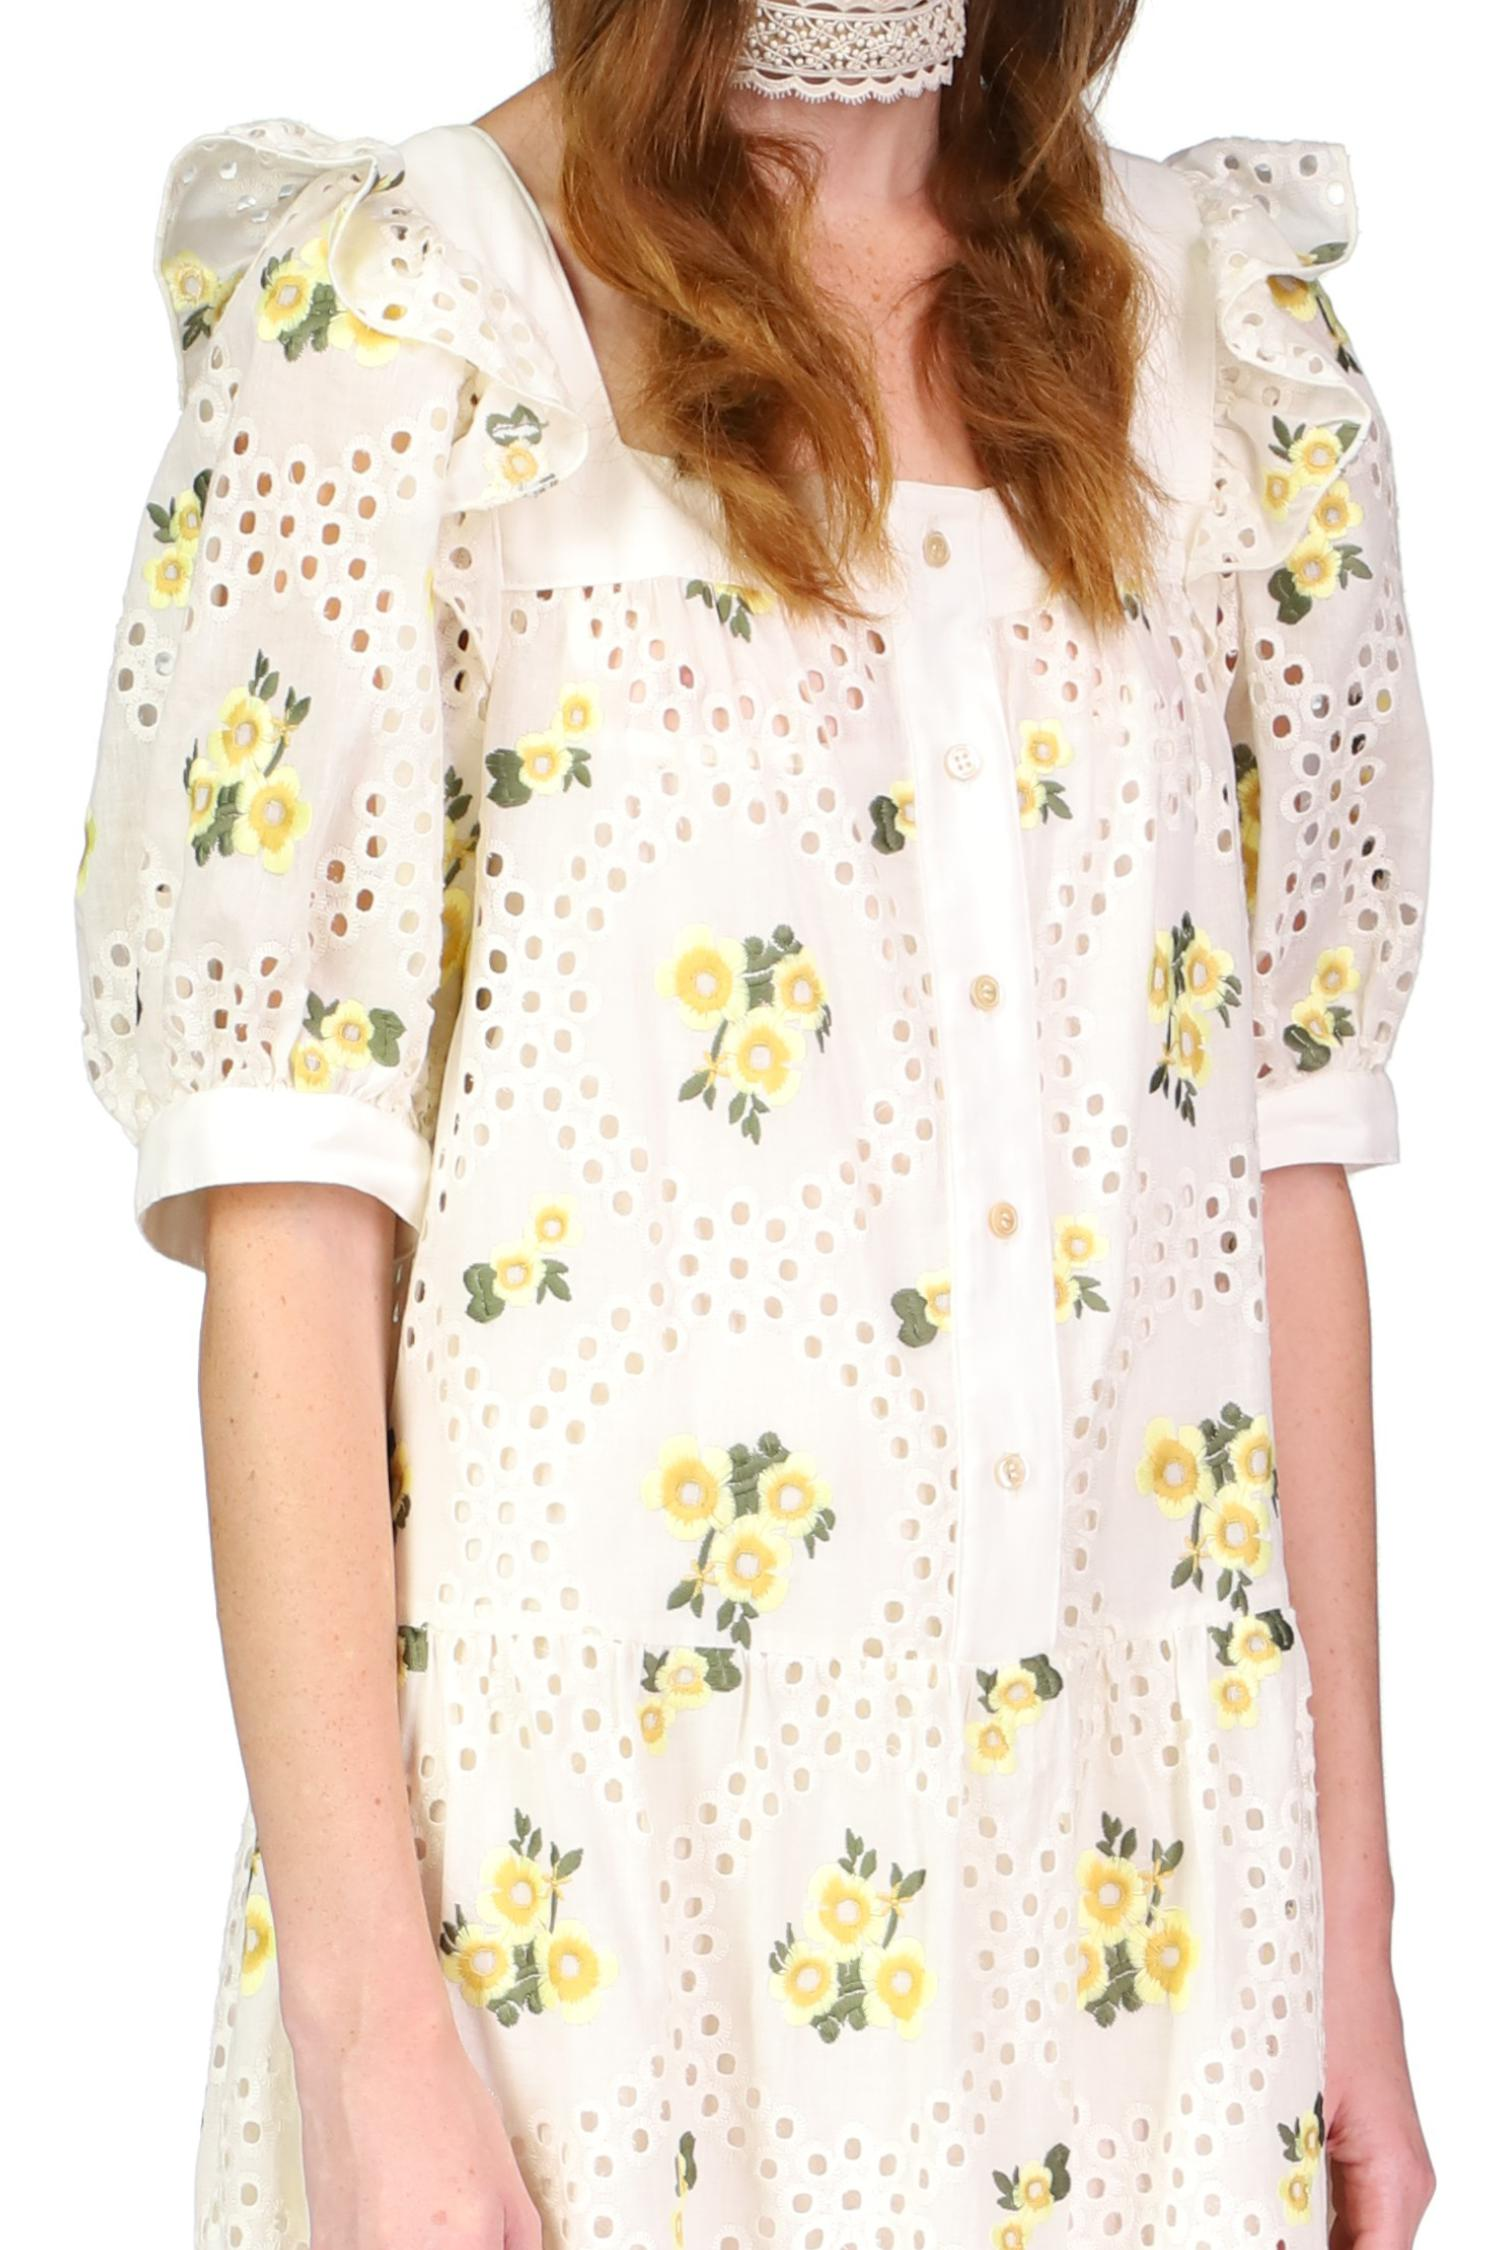 Pansy Eyelet Embroidered Puff Sleeve Dress 2